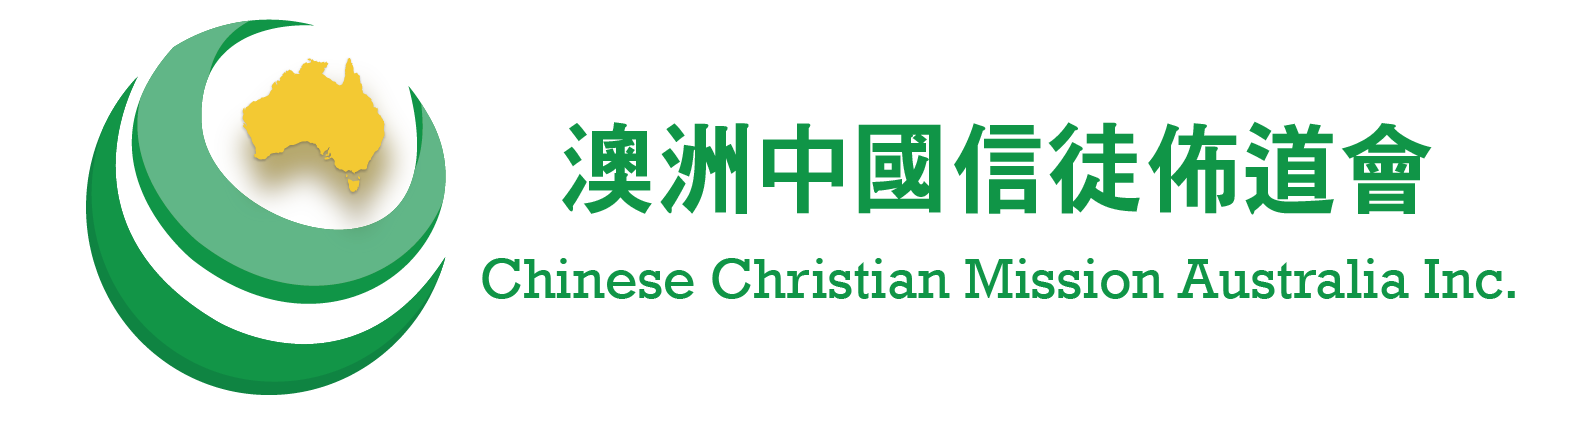 澳洲中信 Chinese Christian Mission Australia Inc.